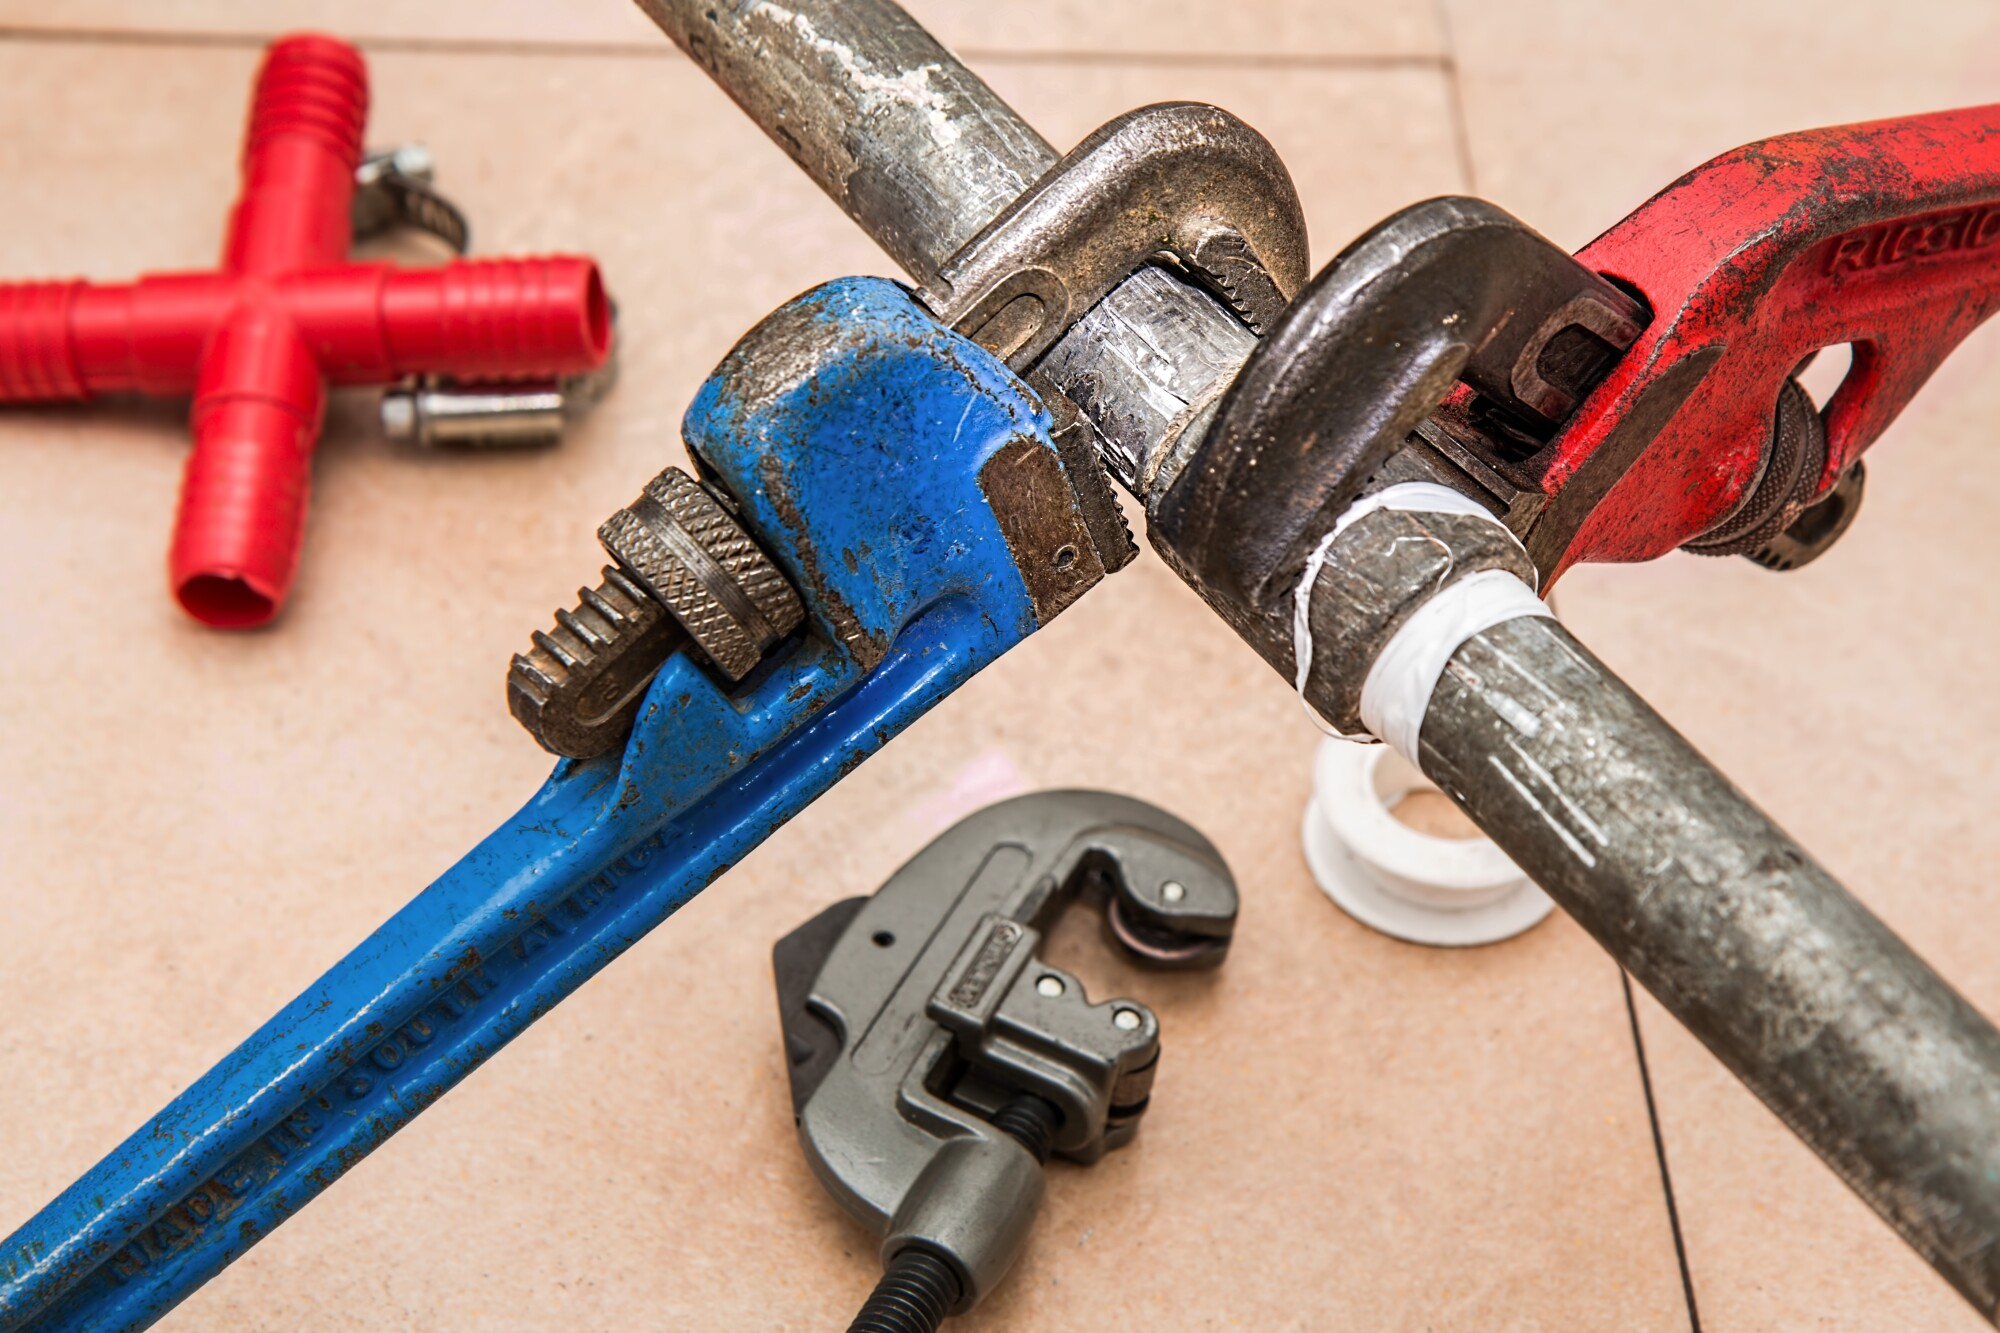 Pinellas Plumbing: Top 5 Reasons to Try Our Services